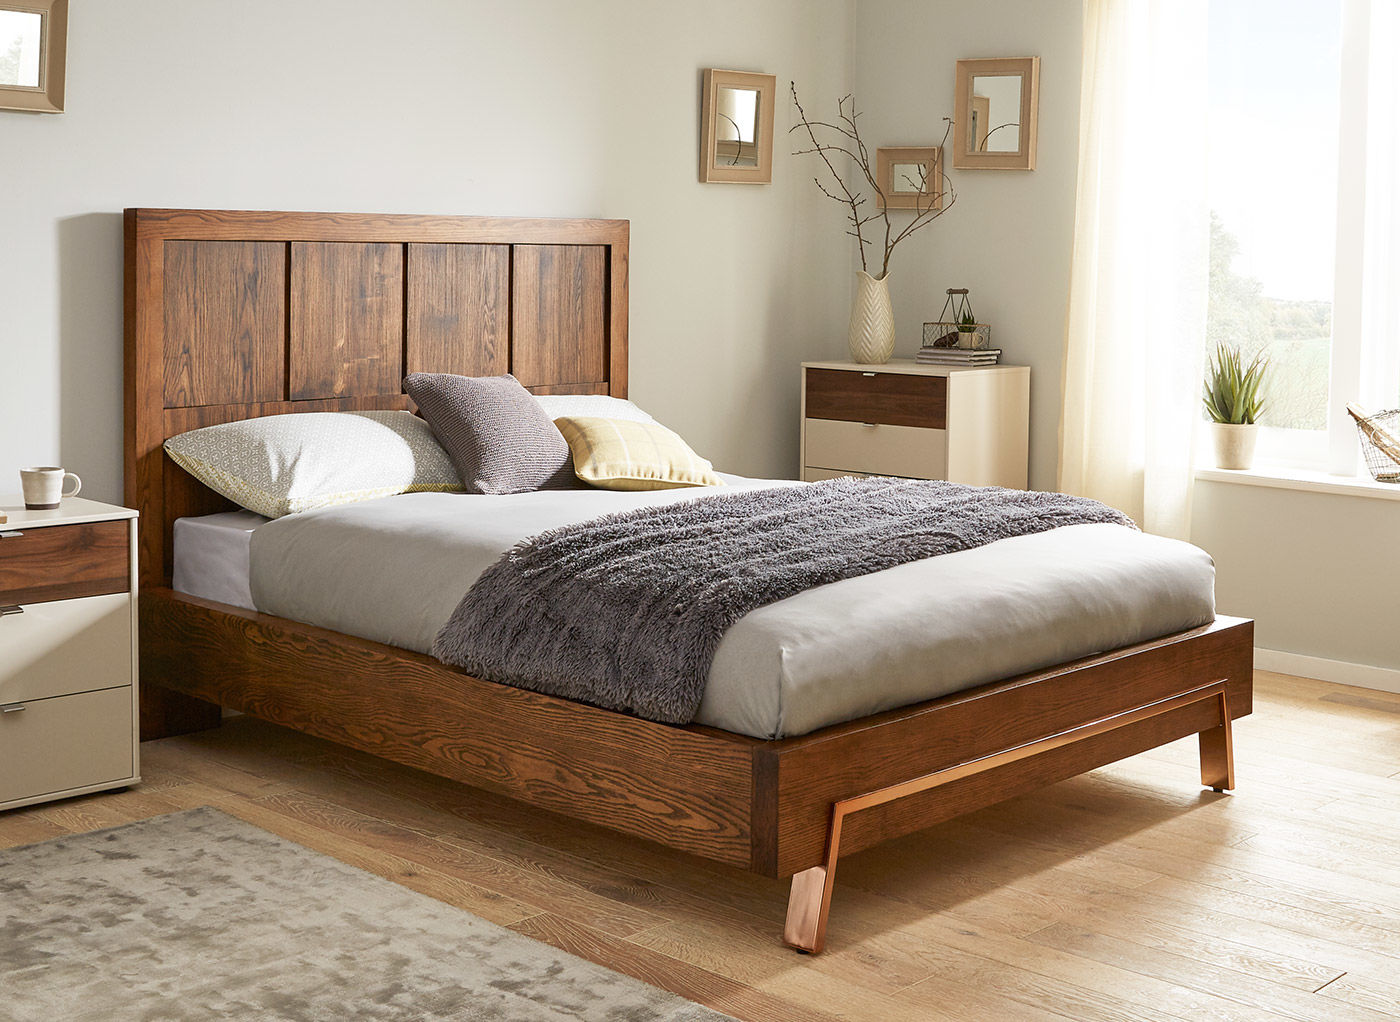 wooden beds grant dark wood and copper bed frame TVPWIXW